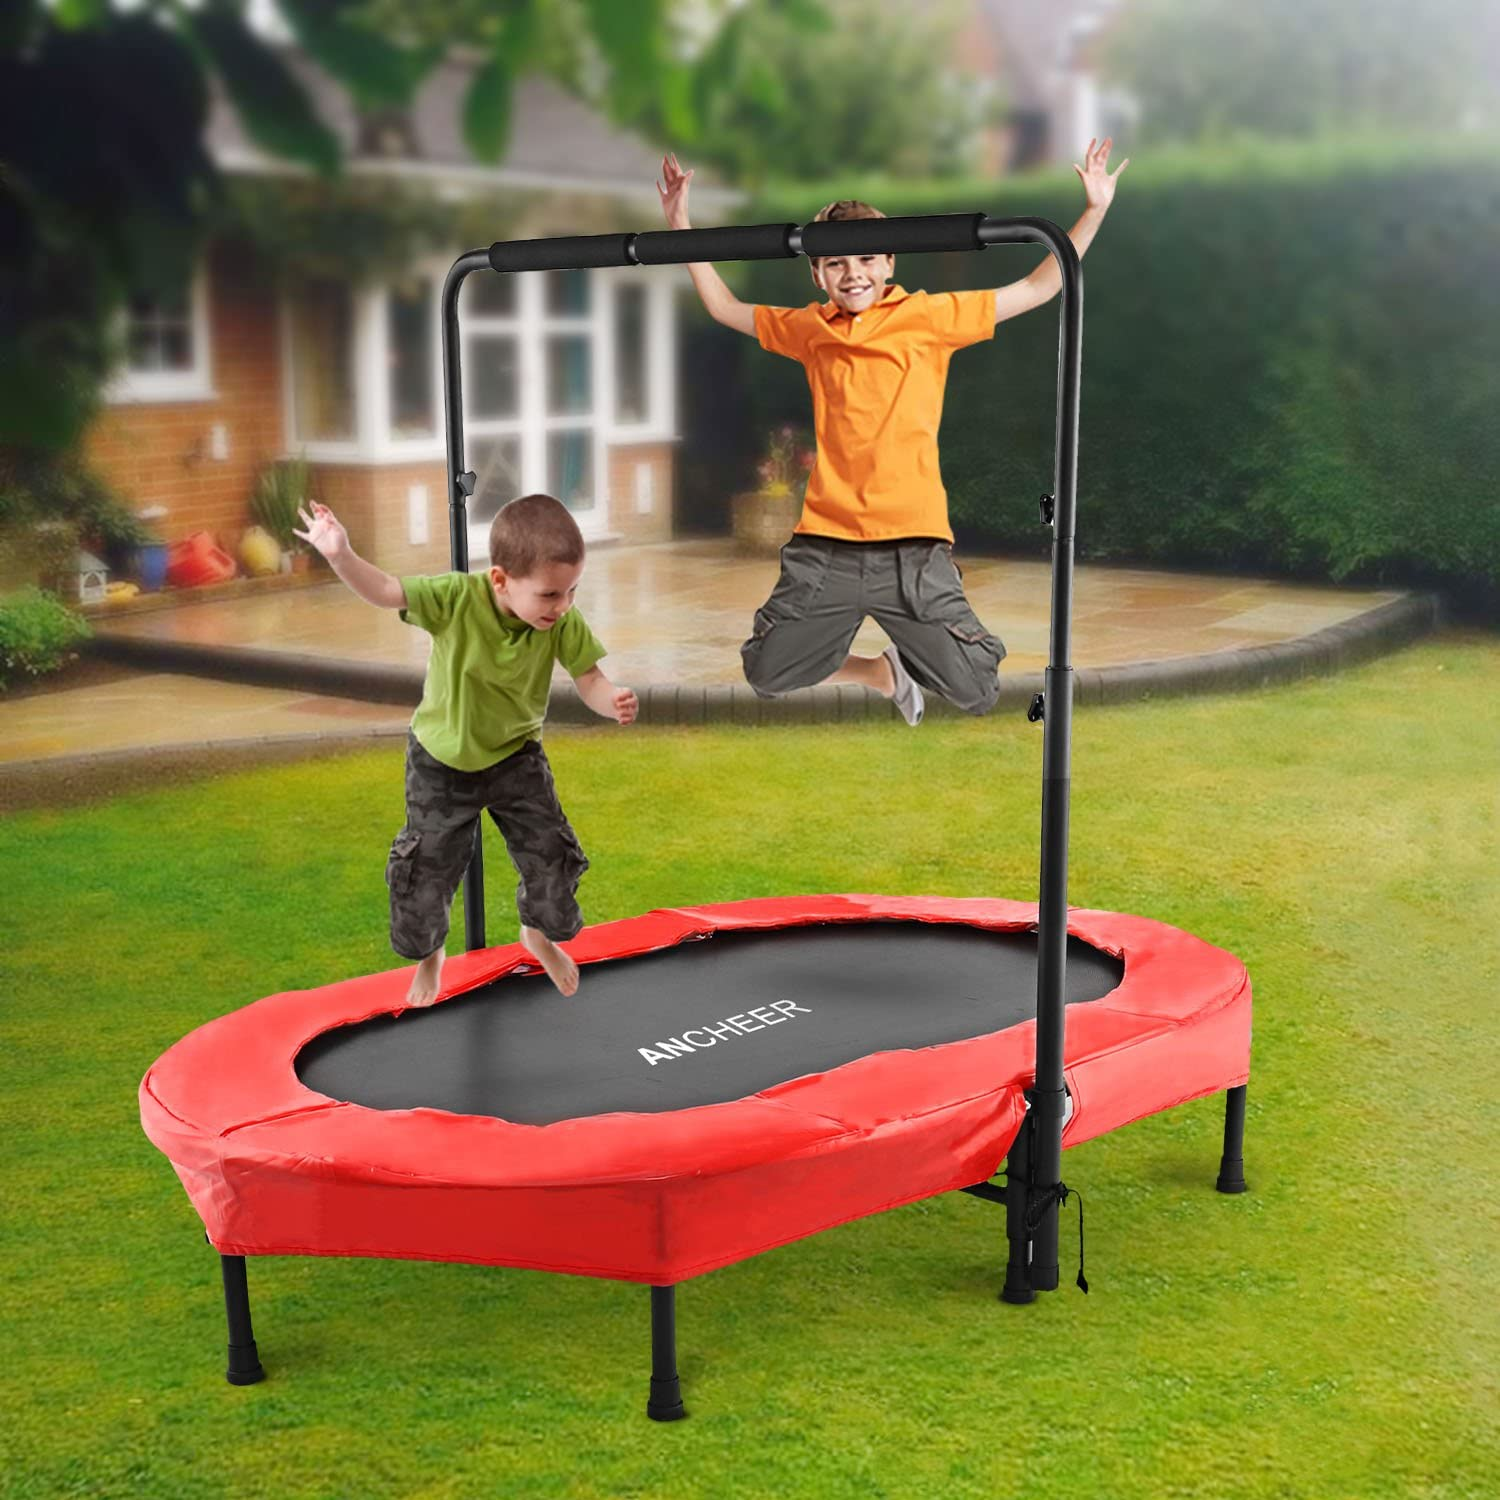 Best rebounder reviews consumer reports